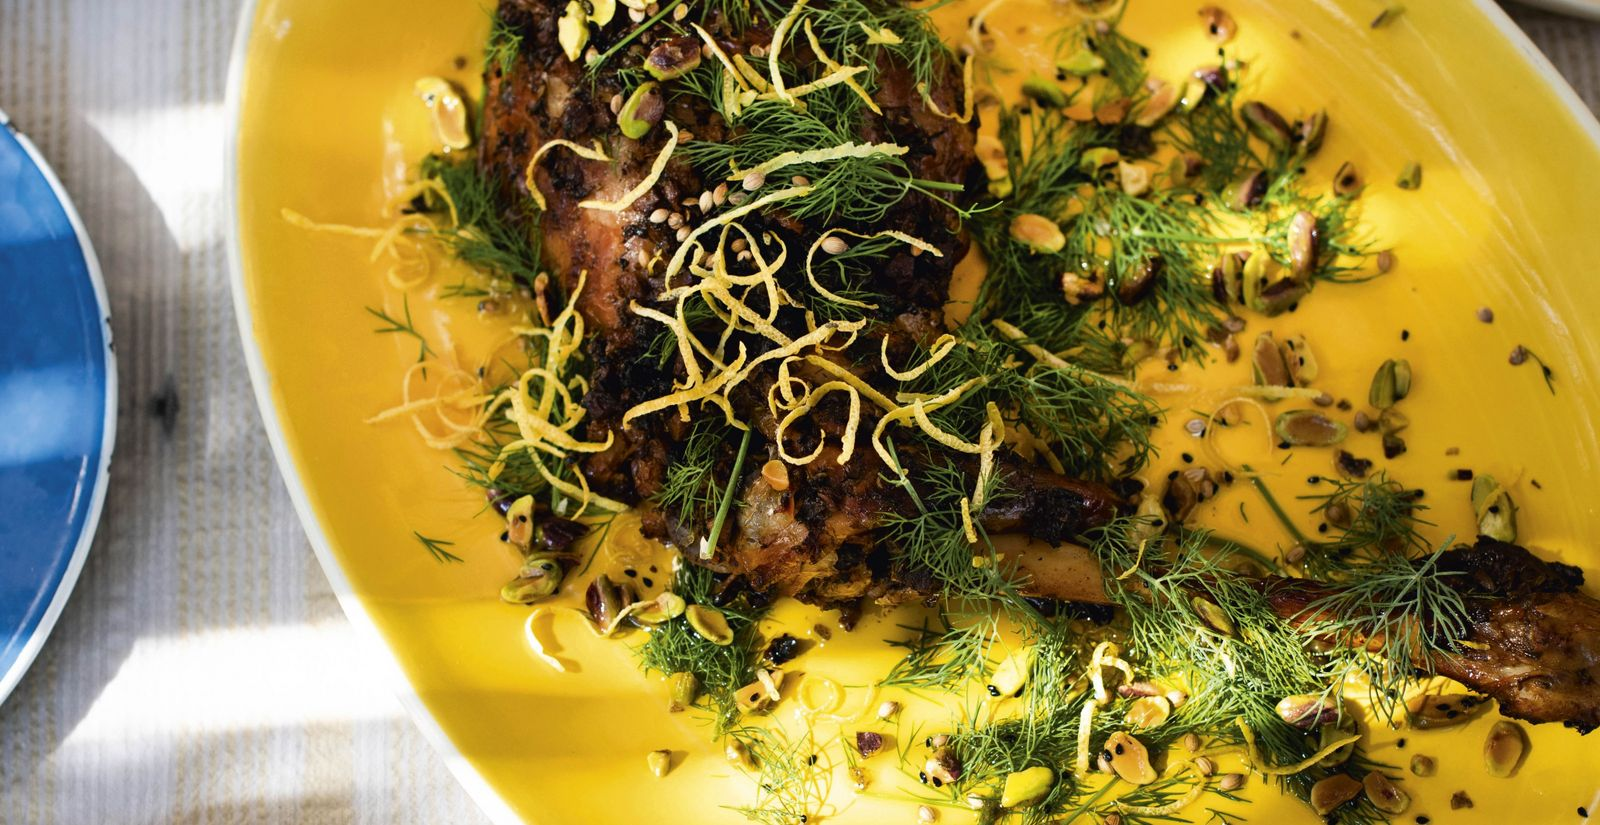 How to make it: Alberto Bourdeth's slow-roasted goat recipe